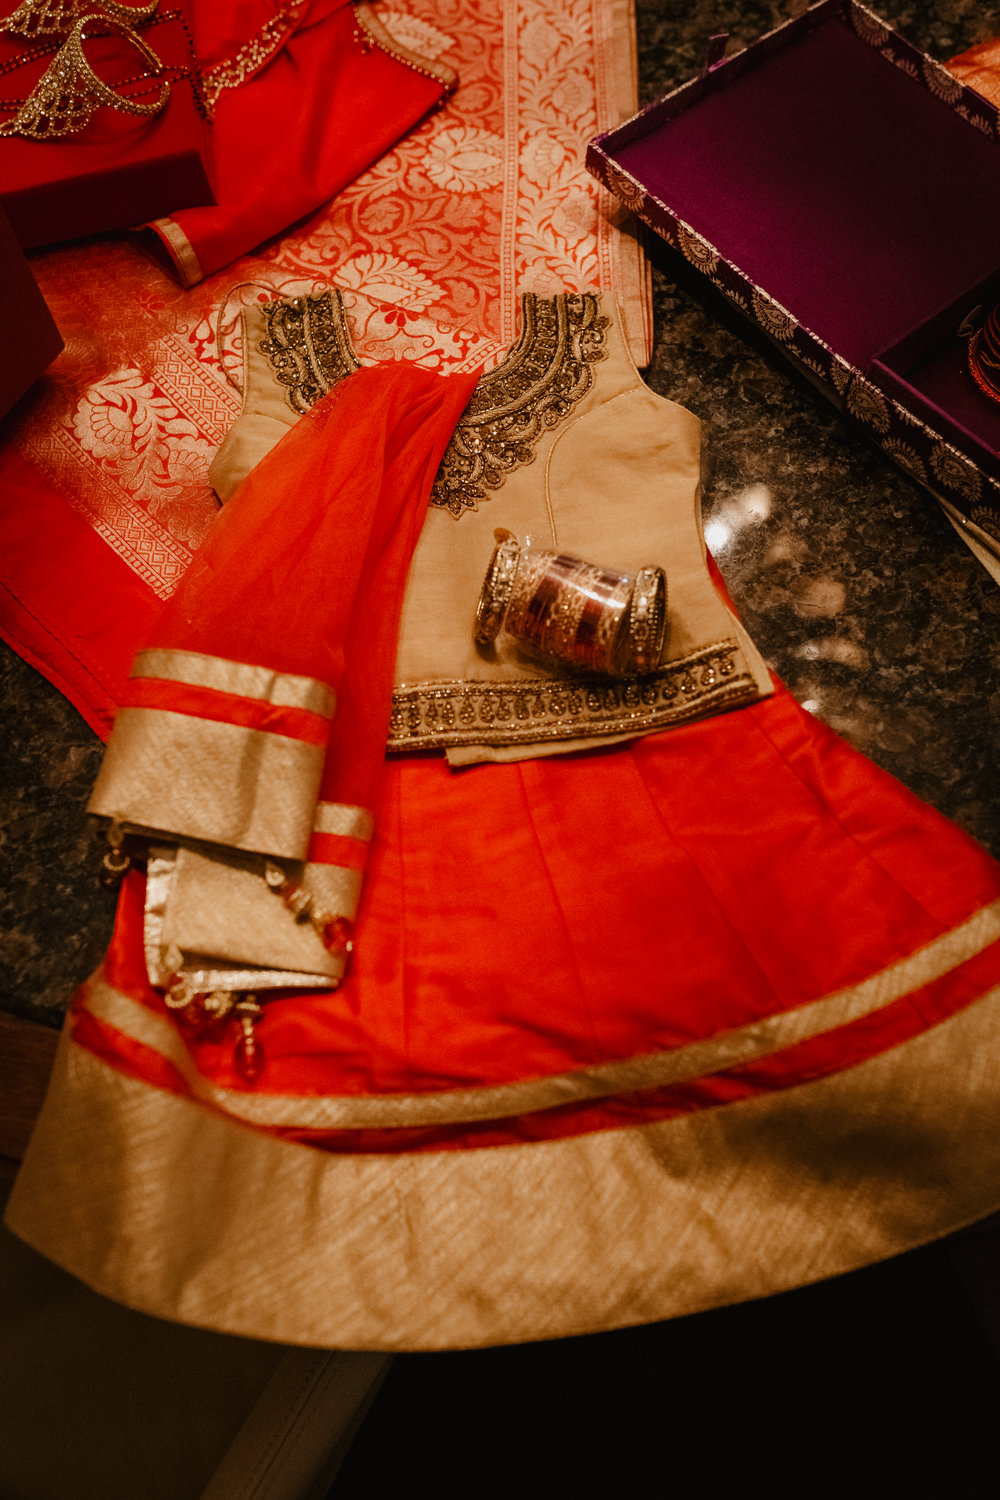 RoopaRyan-ShadowShinePictures-WeddingPhotograhyPreviews-0129.jpg